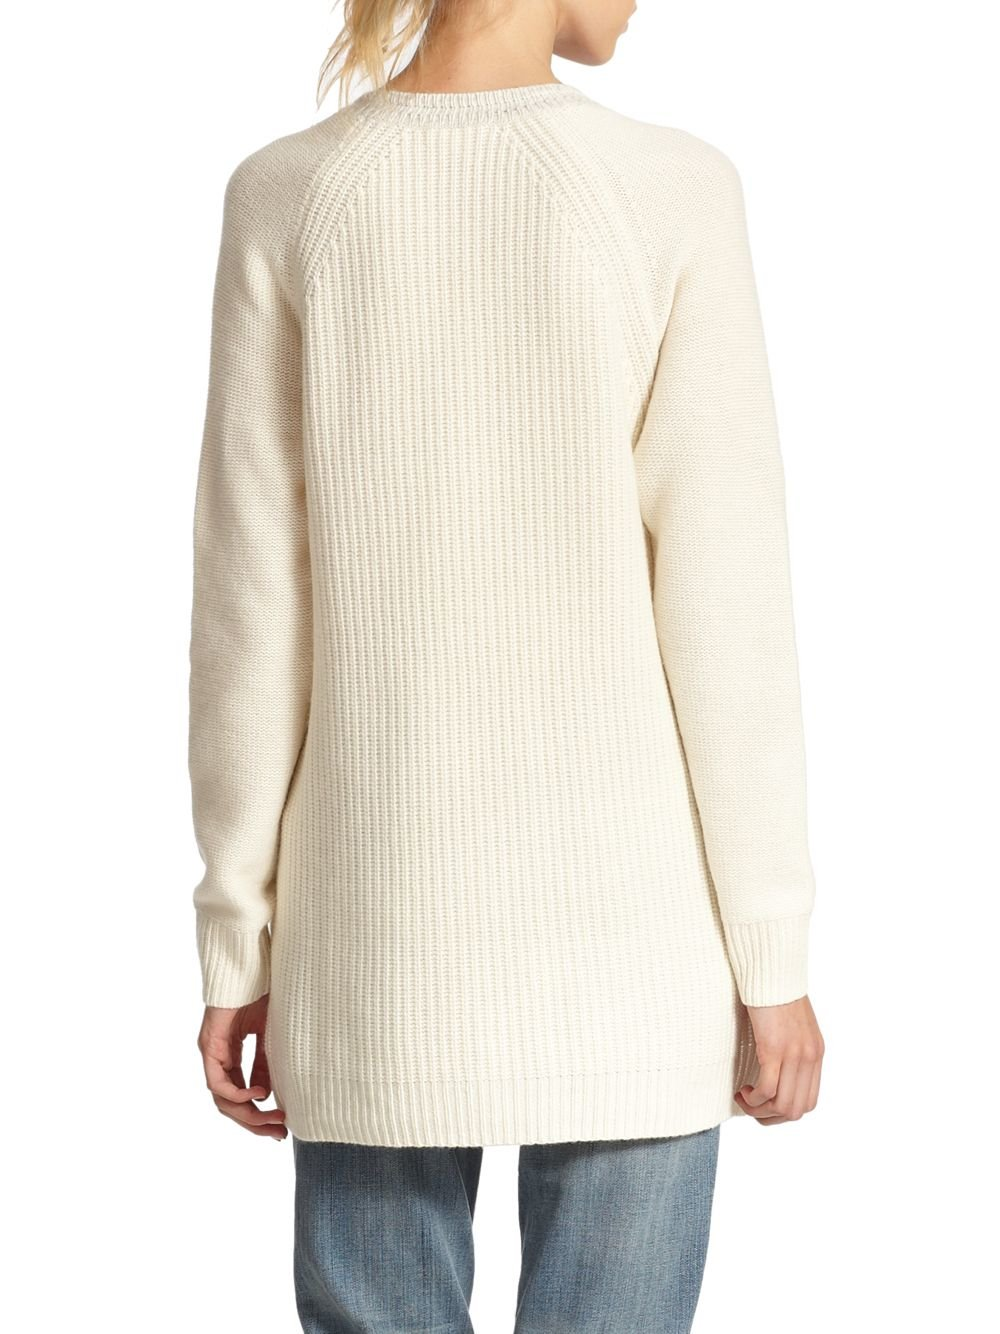 Rebecca taylor Oversized Side-zip Sweater in Natural | Lyst